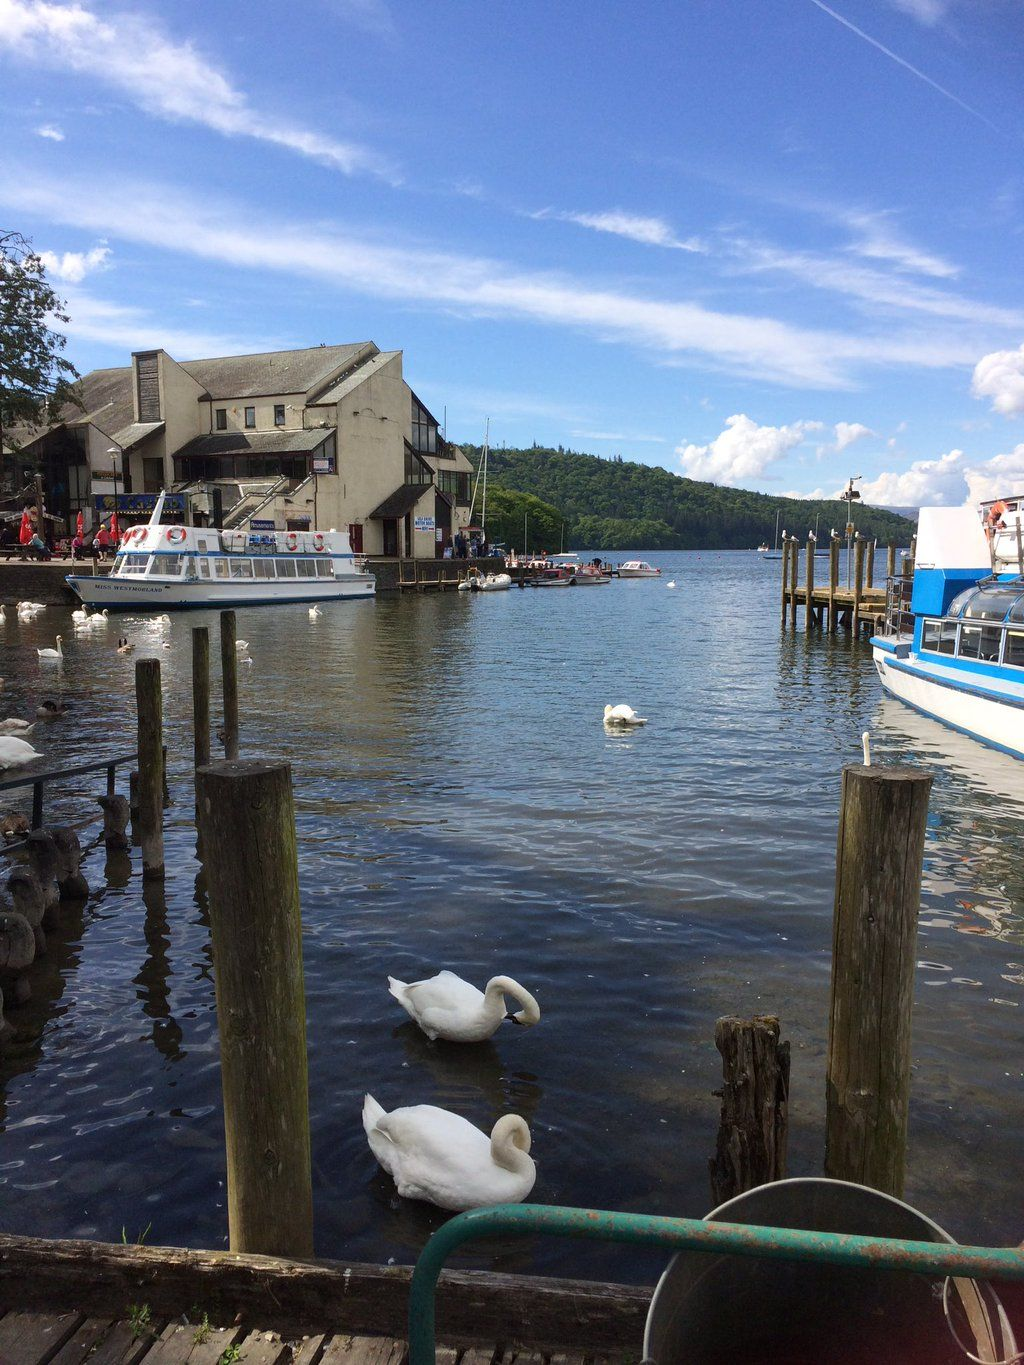 Watching the Swans on Lake Windermere